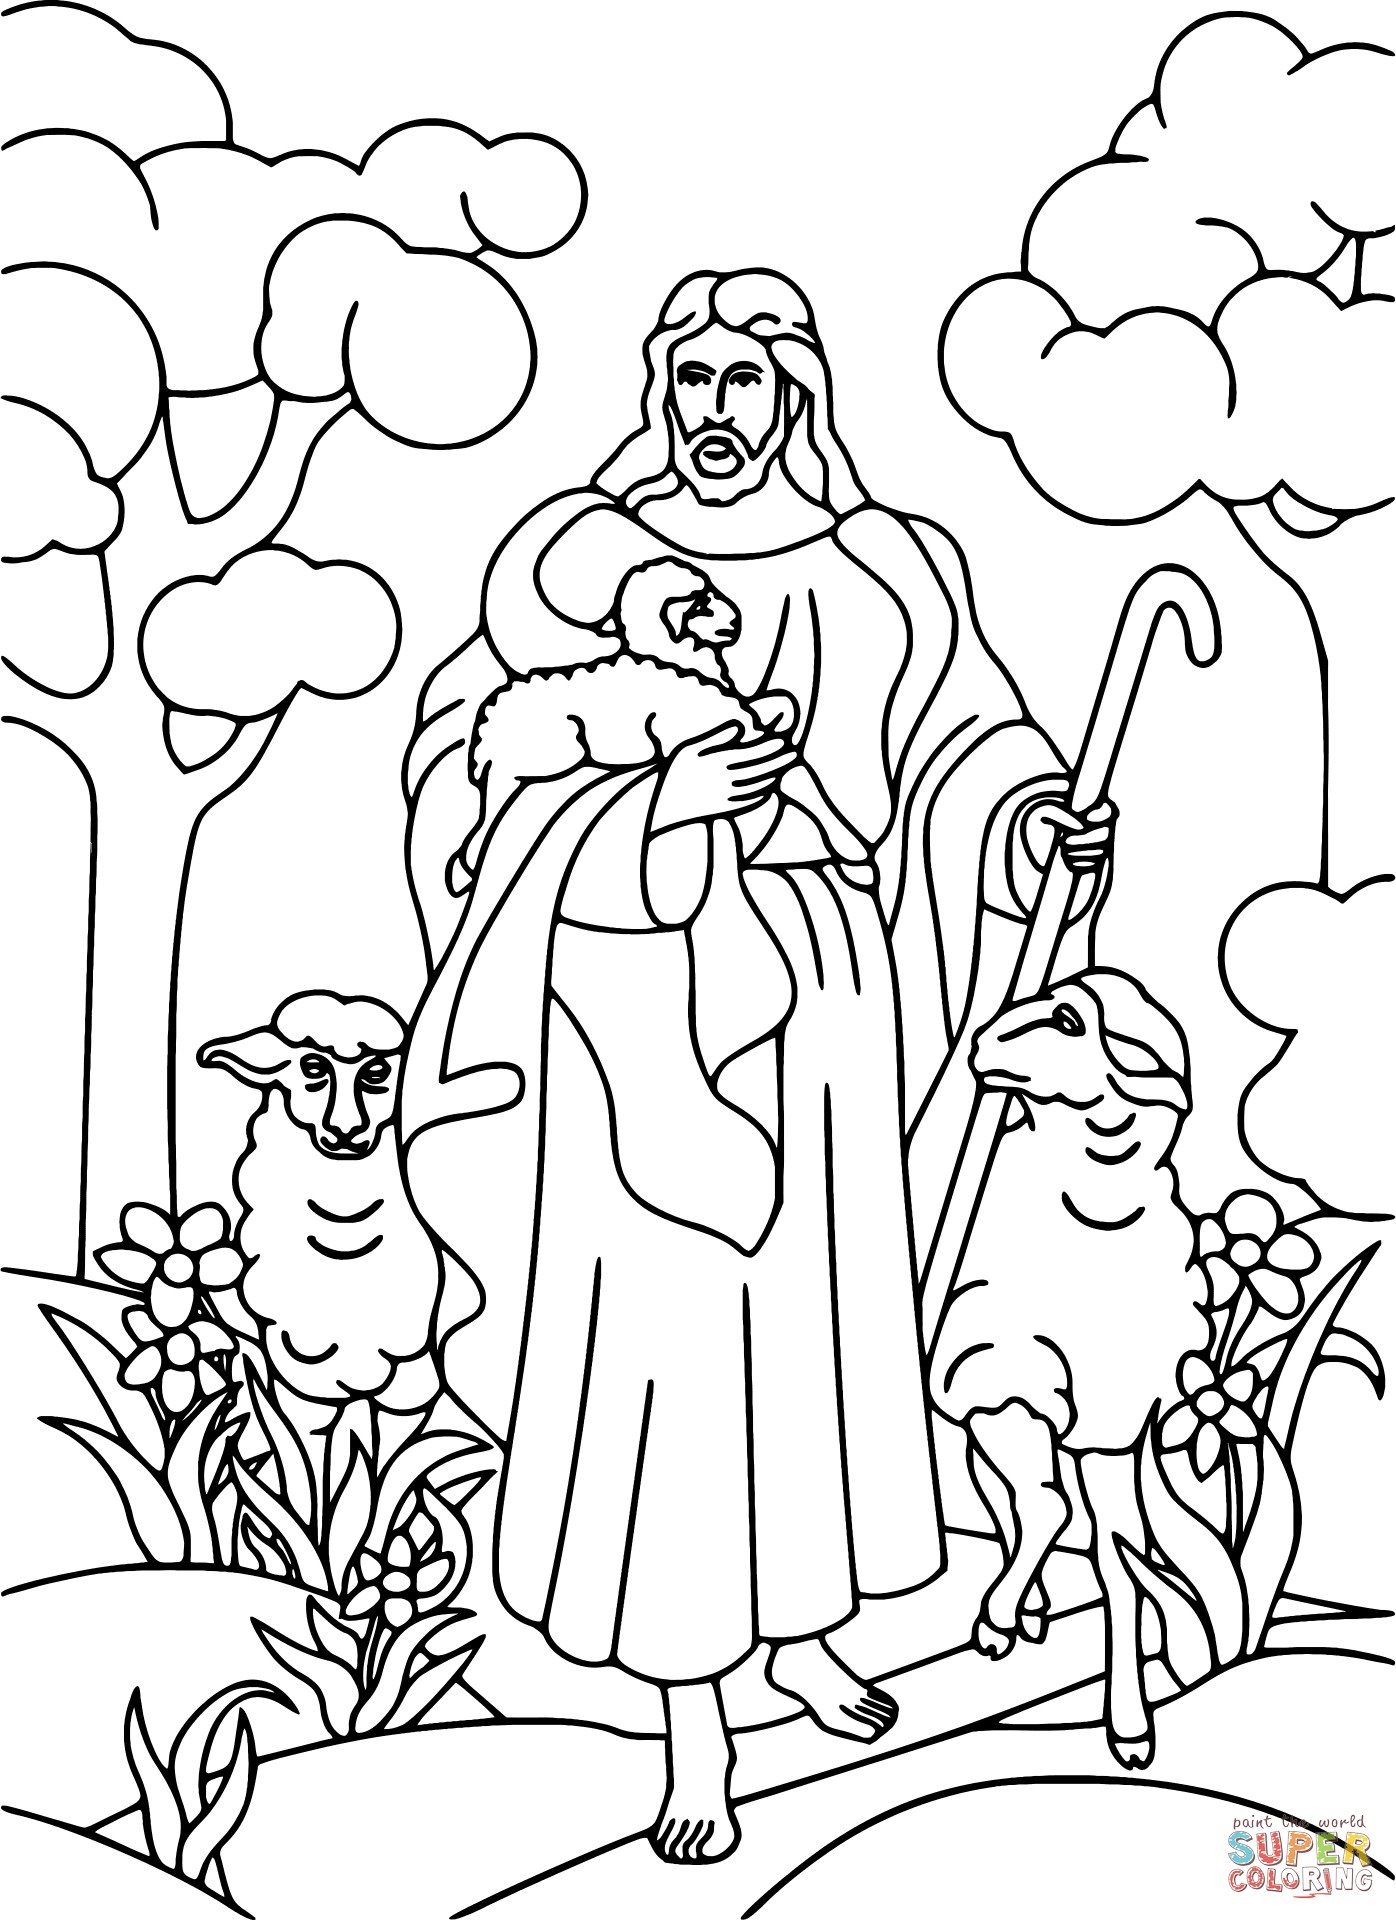 The Good Shepherd Coloring Page Good Shepherd Coloring Page Wiim Coloring Page